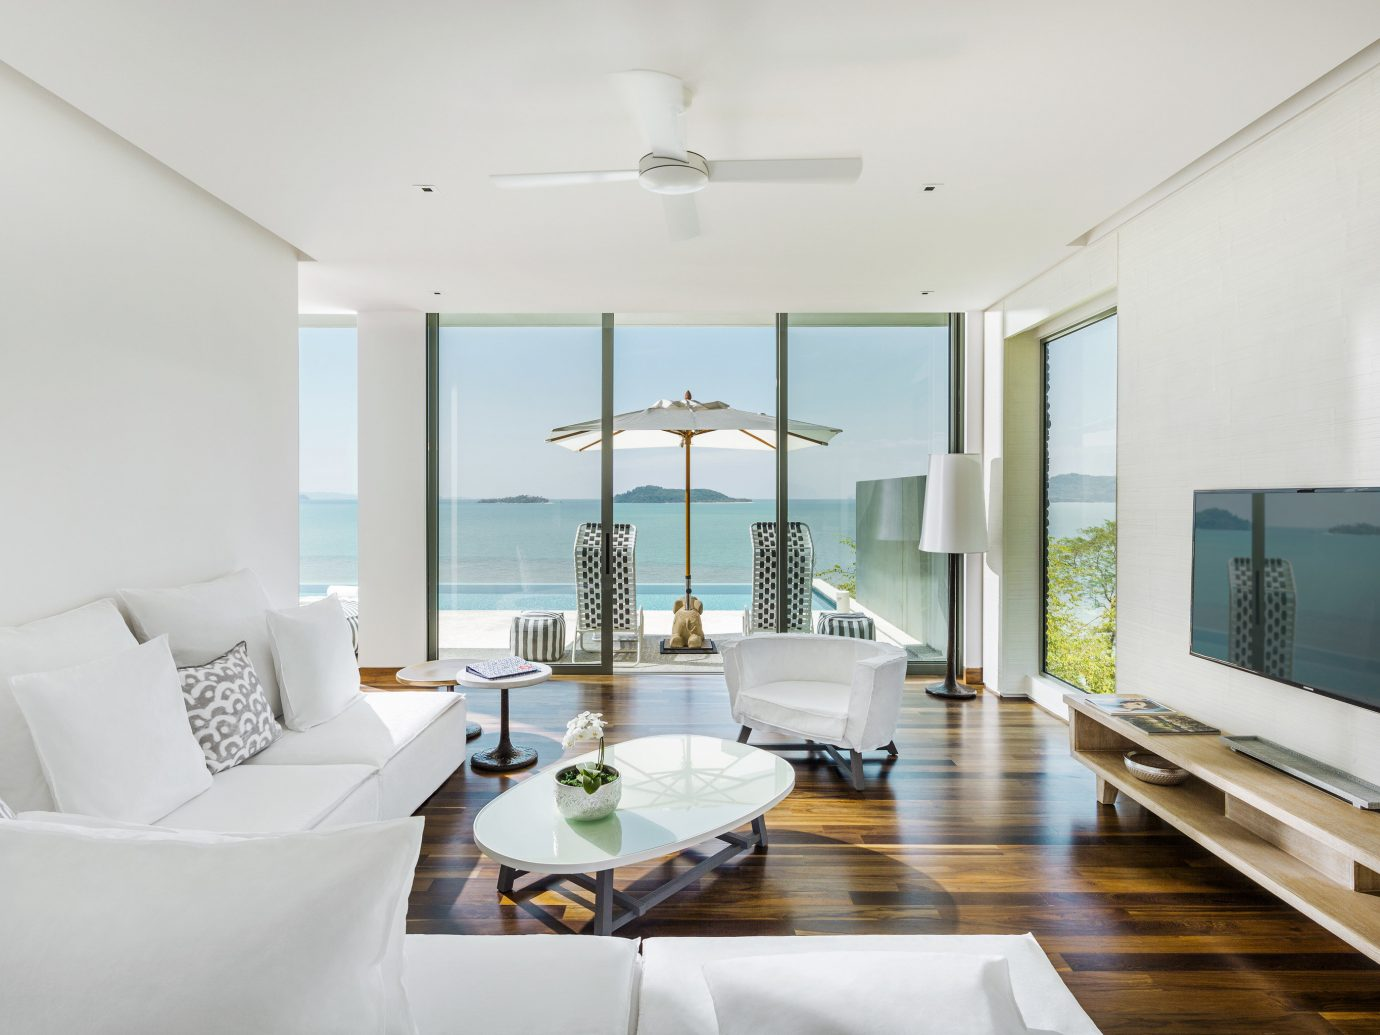 Beach Hotels Phuket Thailand indoor wall floor room ceiling living room window Living interior design Architecture real estate penthouse apartment house apartment interior designer Suite furniture condominium decorated